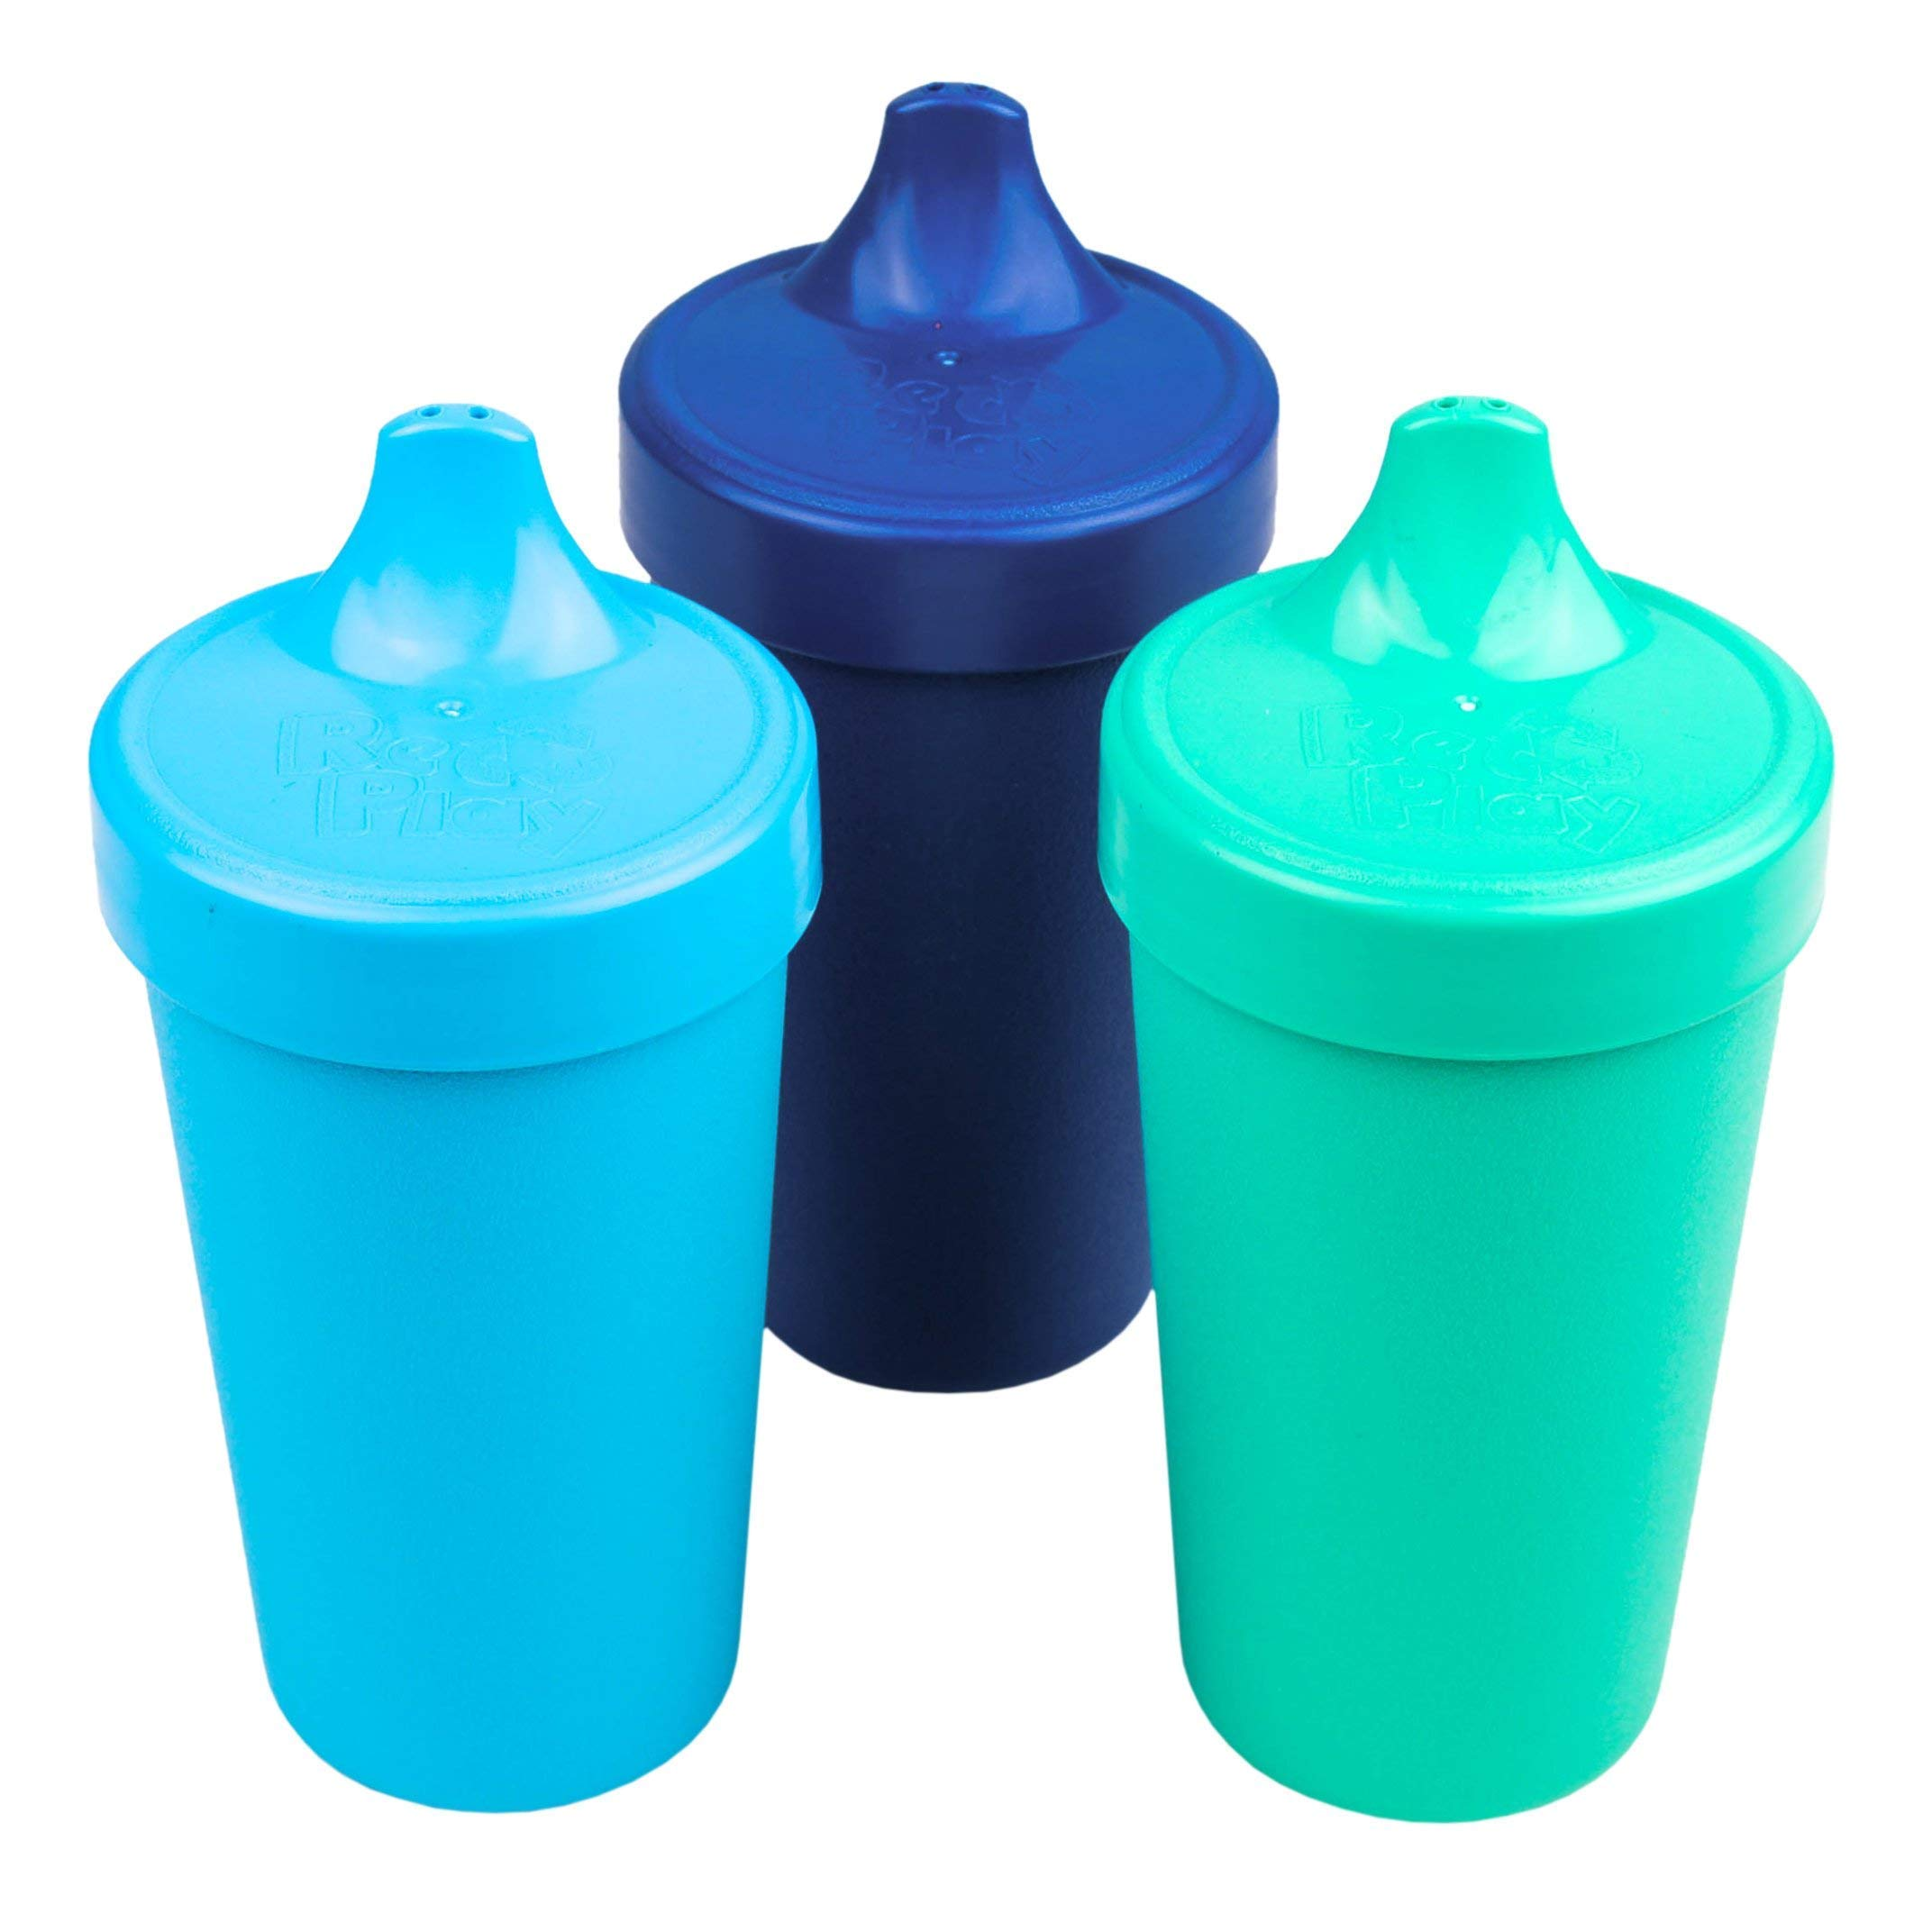 Re-Play Made in USA Toddler Feeding No Spill Sippy Cups in Sky Blue, Navy Blue, Aqua (True Blue Collection) Eco Friendly Heavyweight Recycled Milk Jugs are Virtually Indestructible! by Re-Play